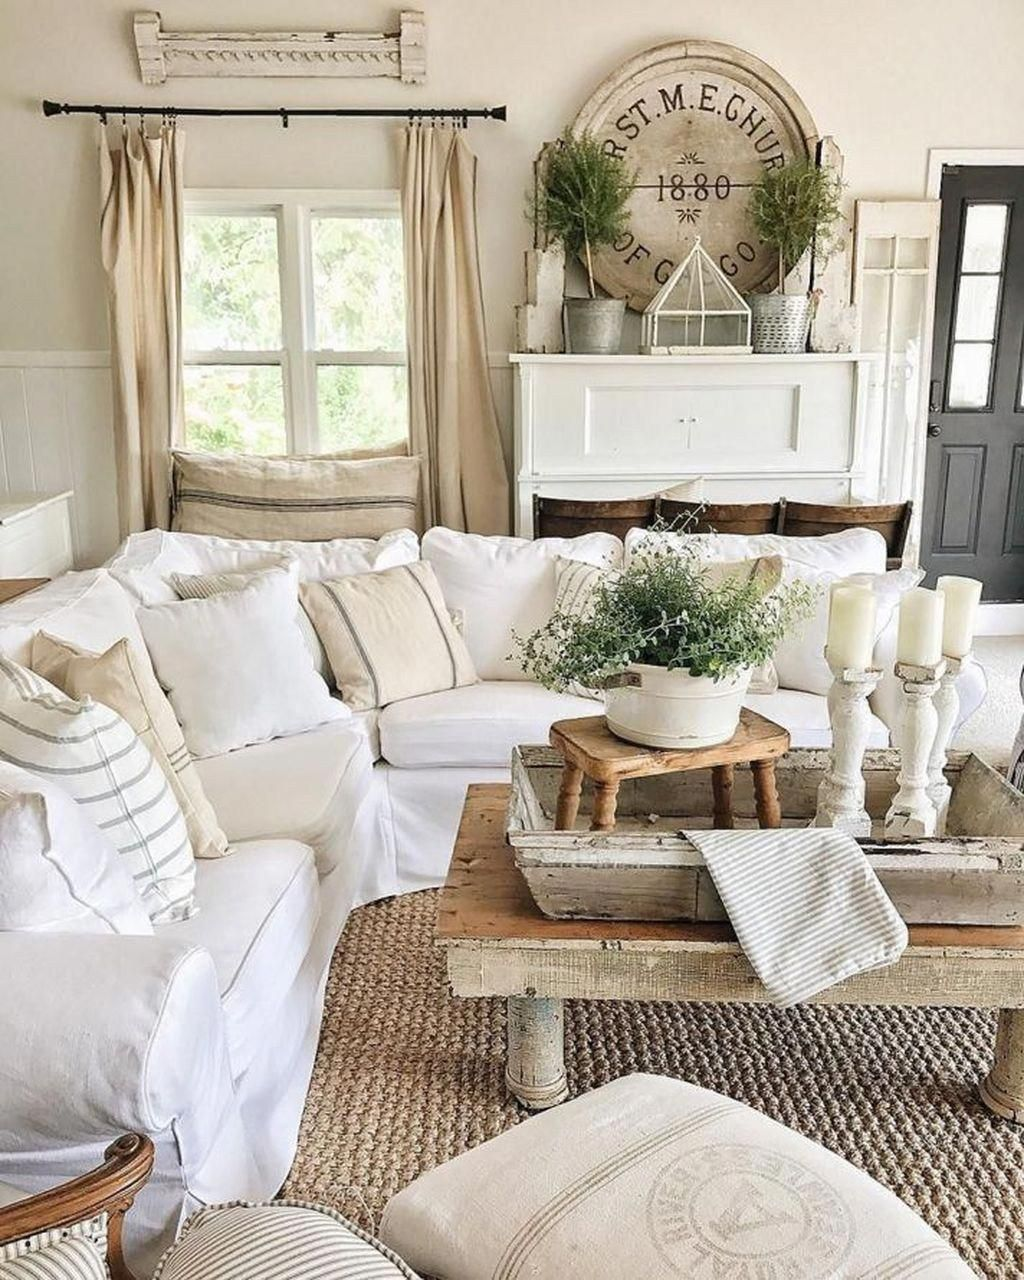 10 Modern Farmhouse Living Room Ideas: Cozy Farmhouse Living Room Decor Ideas That Make You Feel